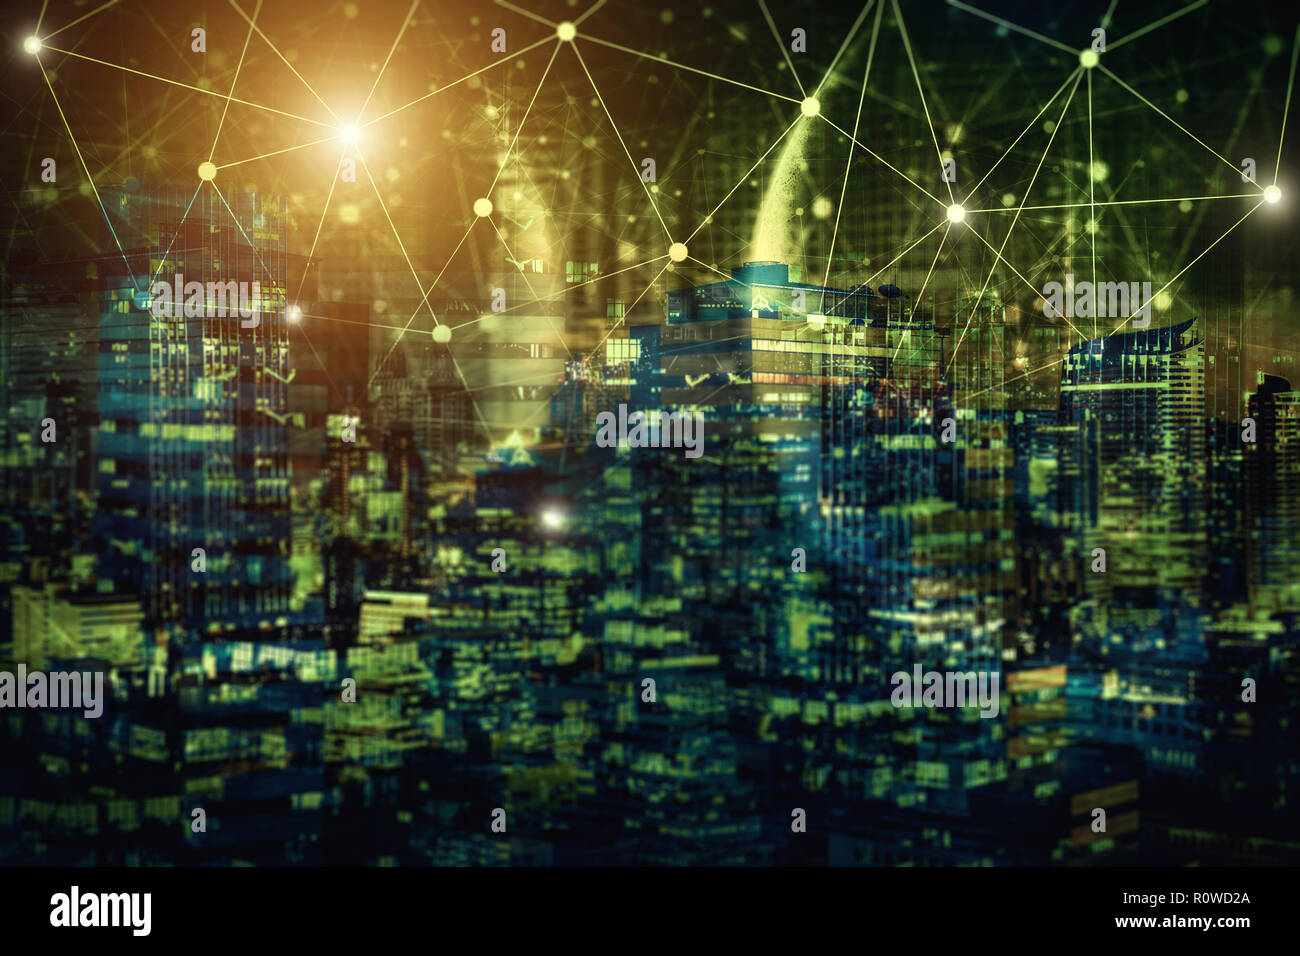 Network connection technology with night city. E-commerce community life in modern city. Some element of this image furnished by nasa. - Stock Image